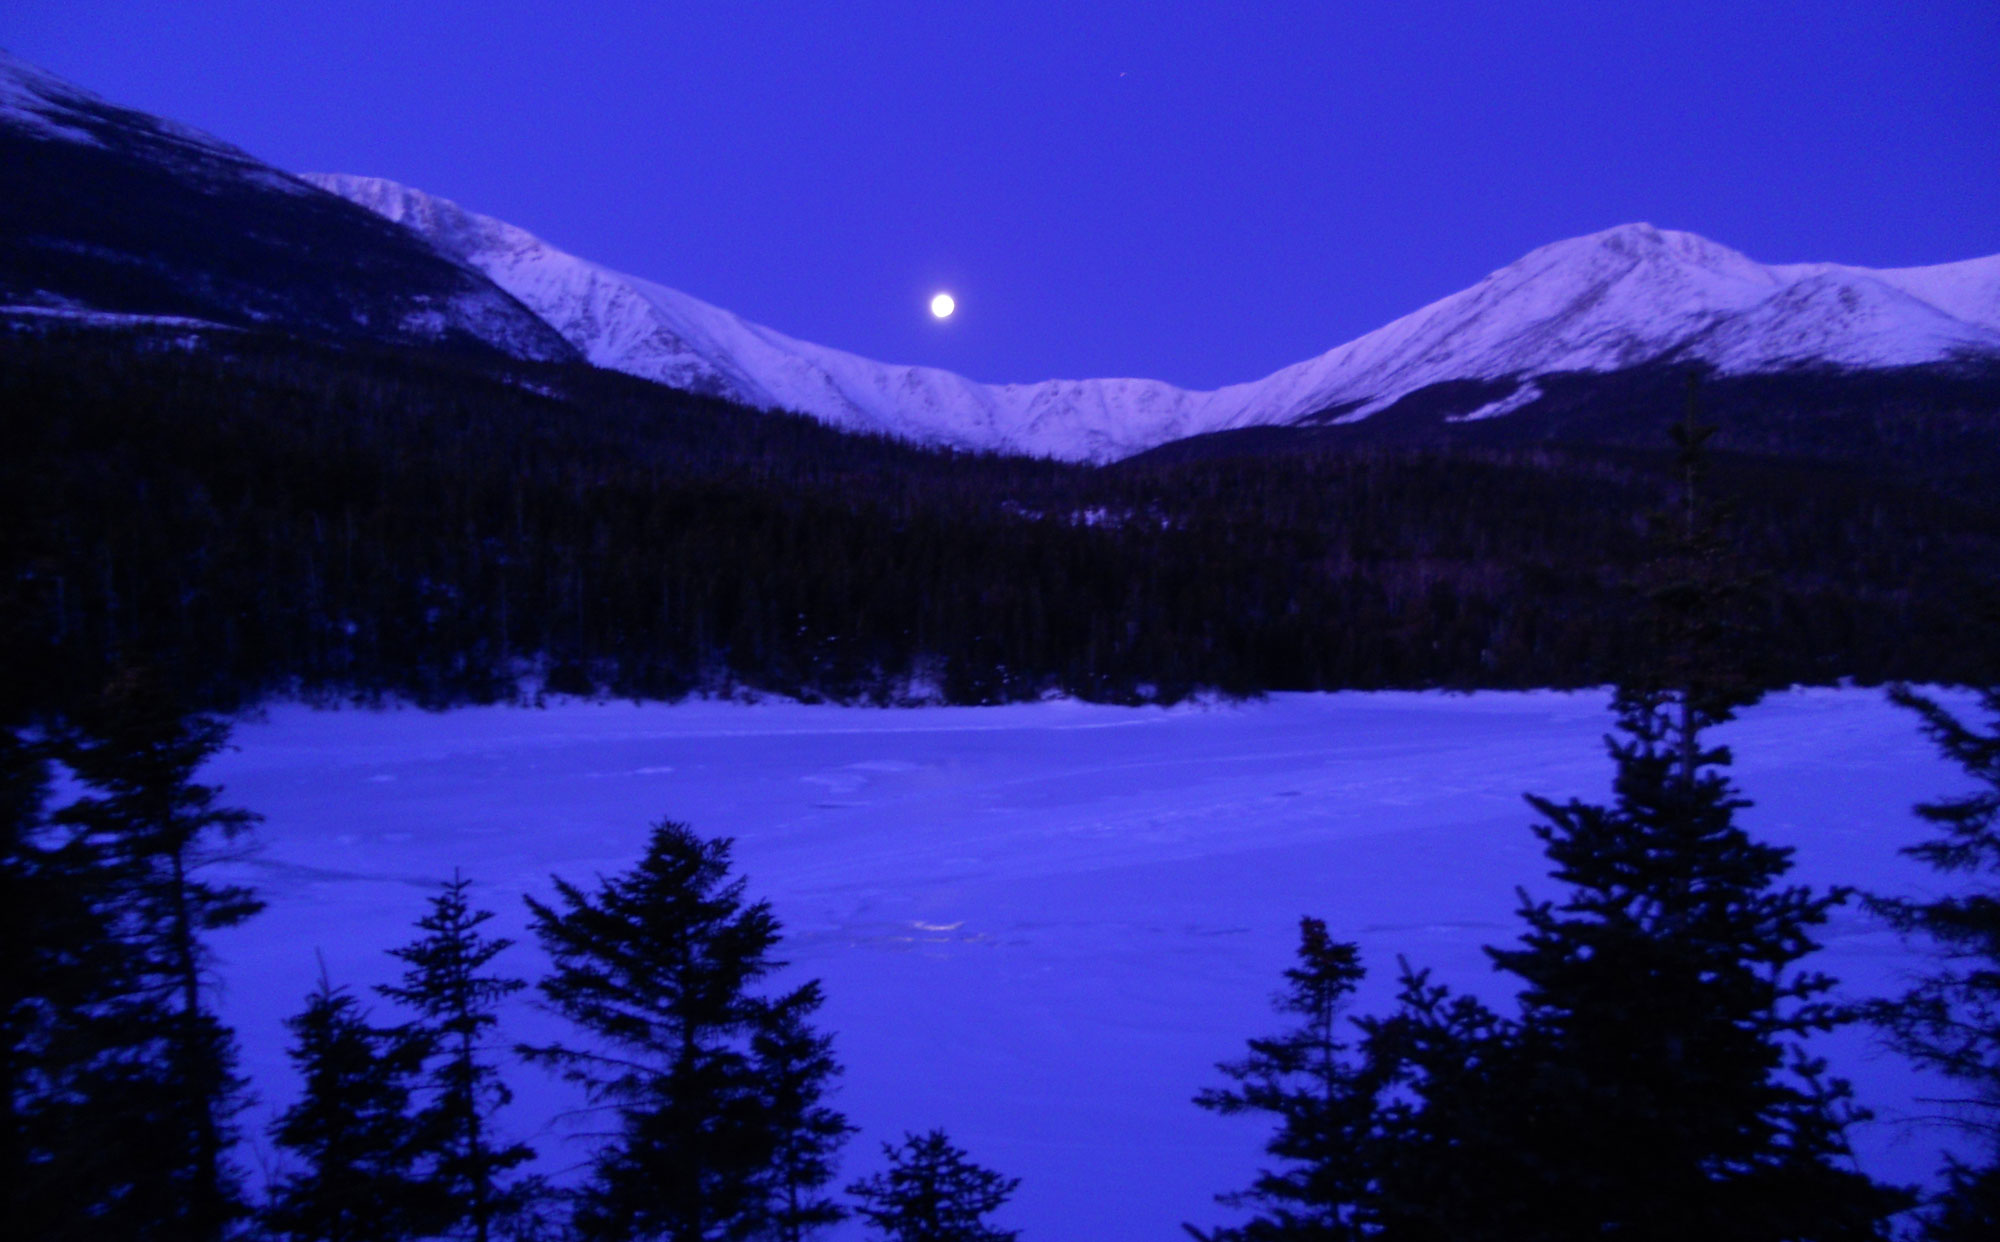 Moonset over the Saddle, Baxter State Park, February 10 2012, 6:19 AM. I had climbed to Katahdin's summit via the Saddle the day before.